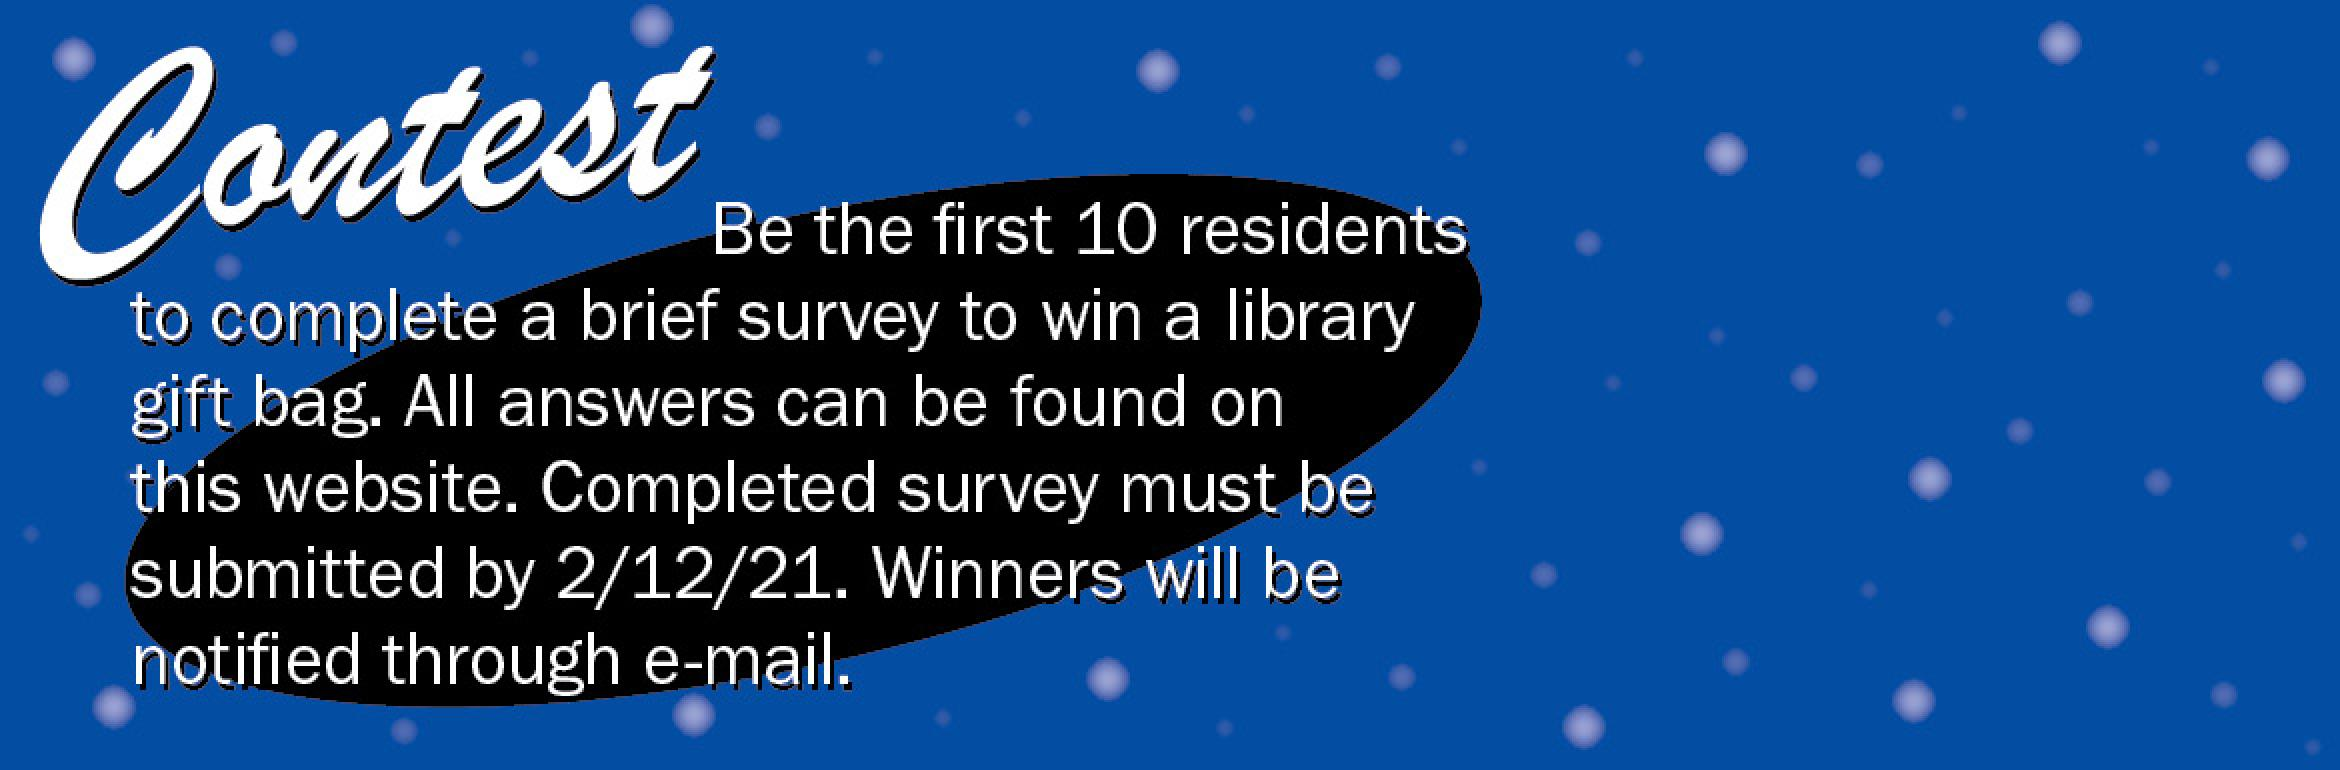 Contest: Be the first 10 residents to complete a brief survey to win a library gift bag. All answers can be found on this website. Completed survey must be submitted by 2/12/21. Winners will be notified through e-mail.